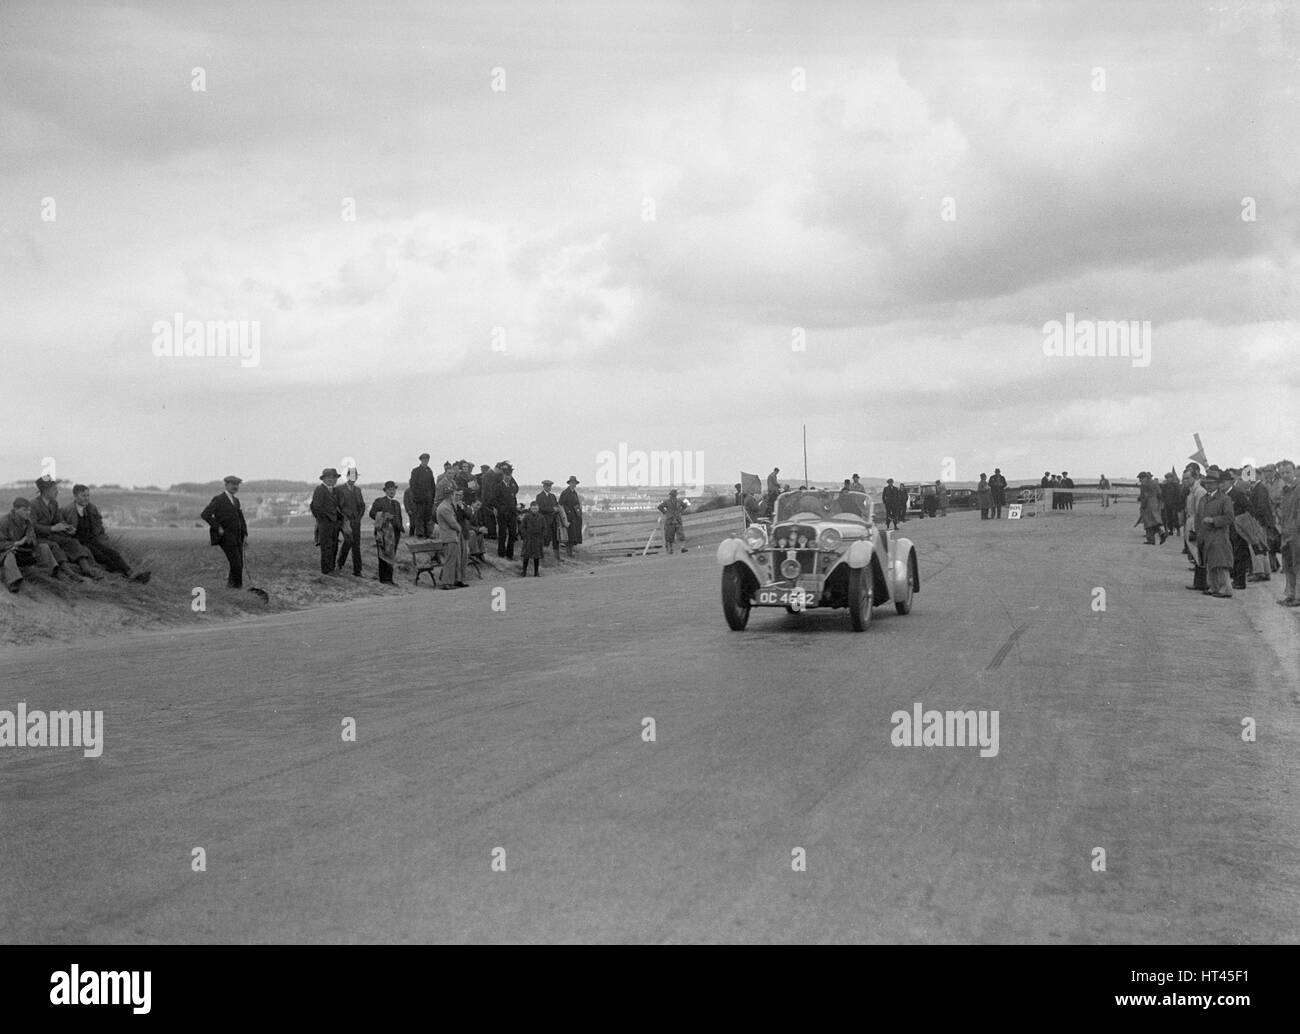 Singer Le Mans of Archie Langley competing in the RSAC Scottish Rally, 1934. Artist: Bill Brunell. - Stock Image